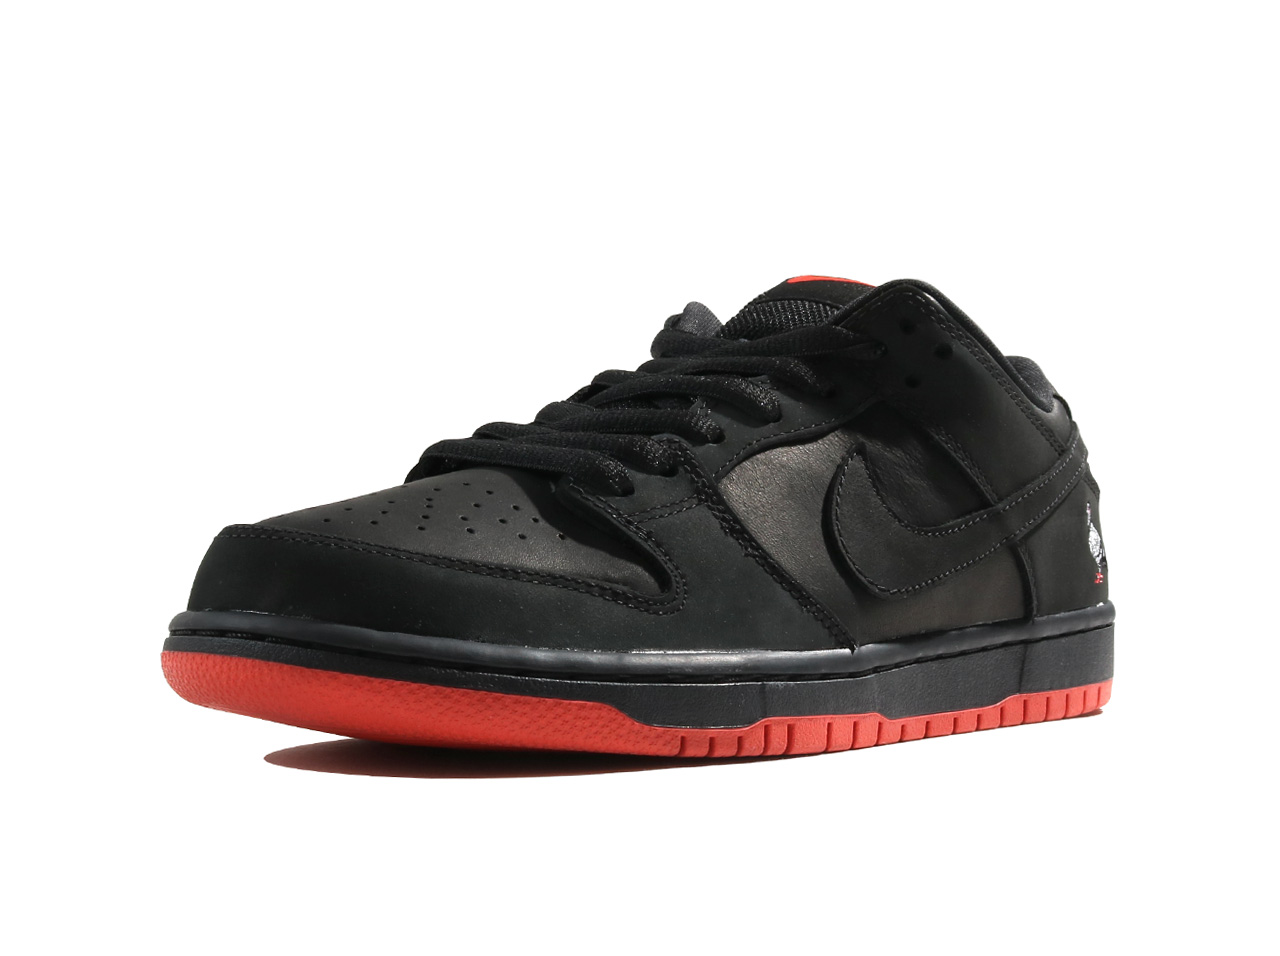 nike_sb_dunk_low_trd_qs_882396_601